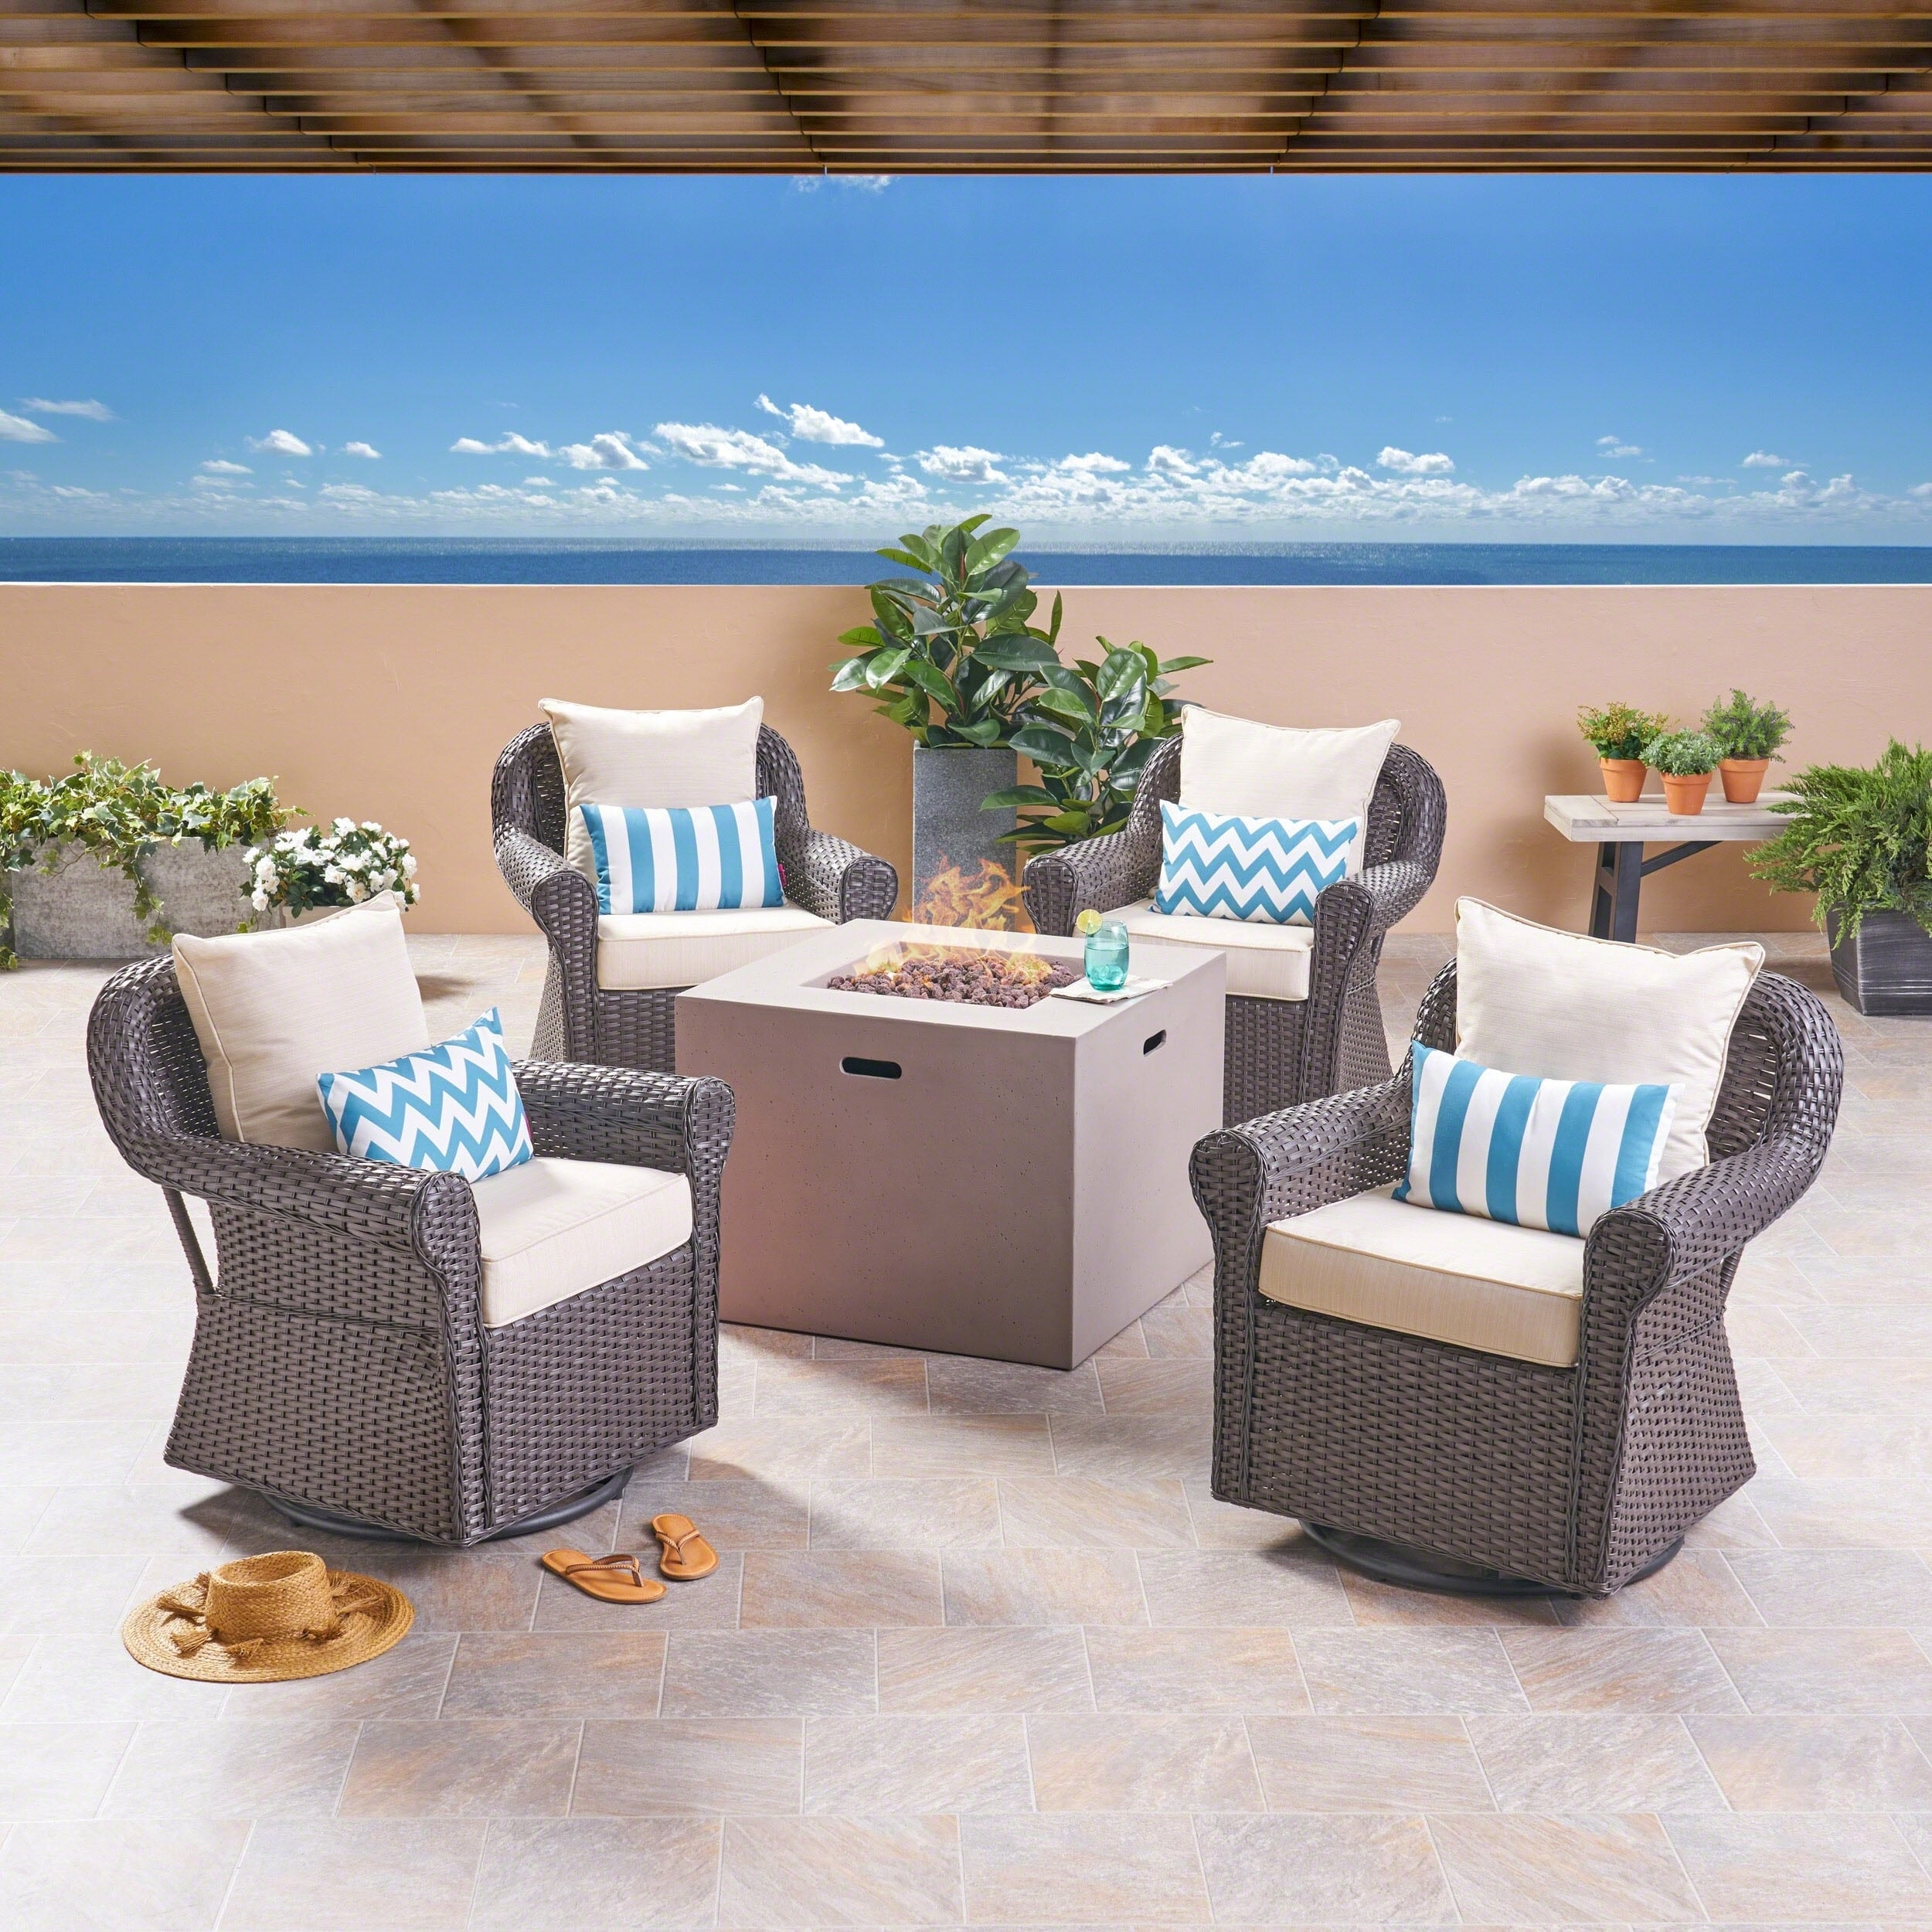 Julian Outdoor 4 Piece Swivel Club Chair Set with Square Fire Pit by Christopher Knight Home (Beige Cushion/Light Gray/Dark brown)